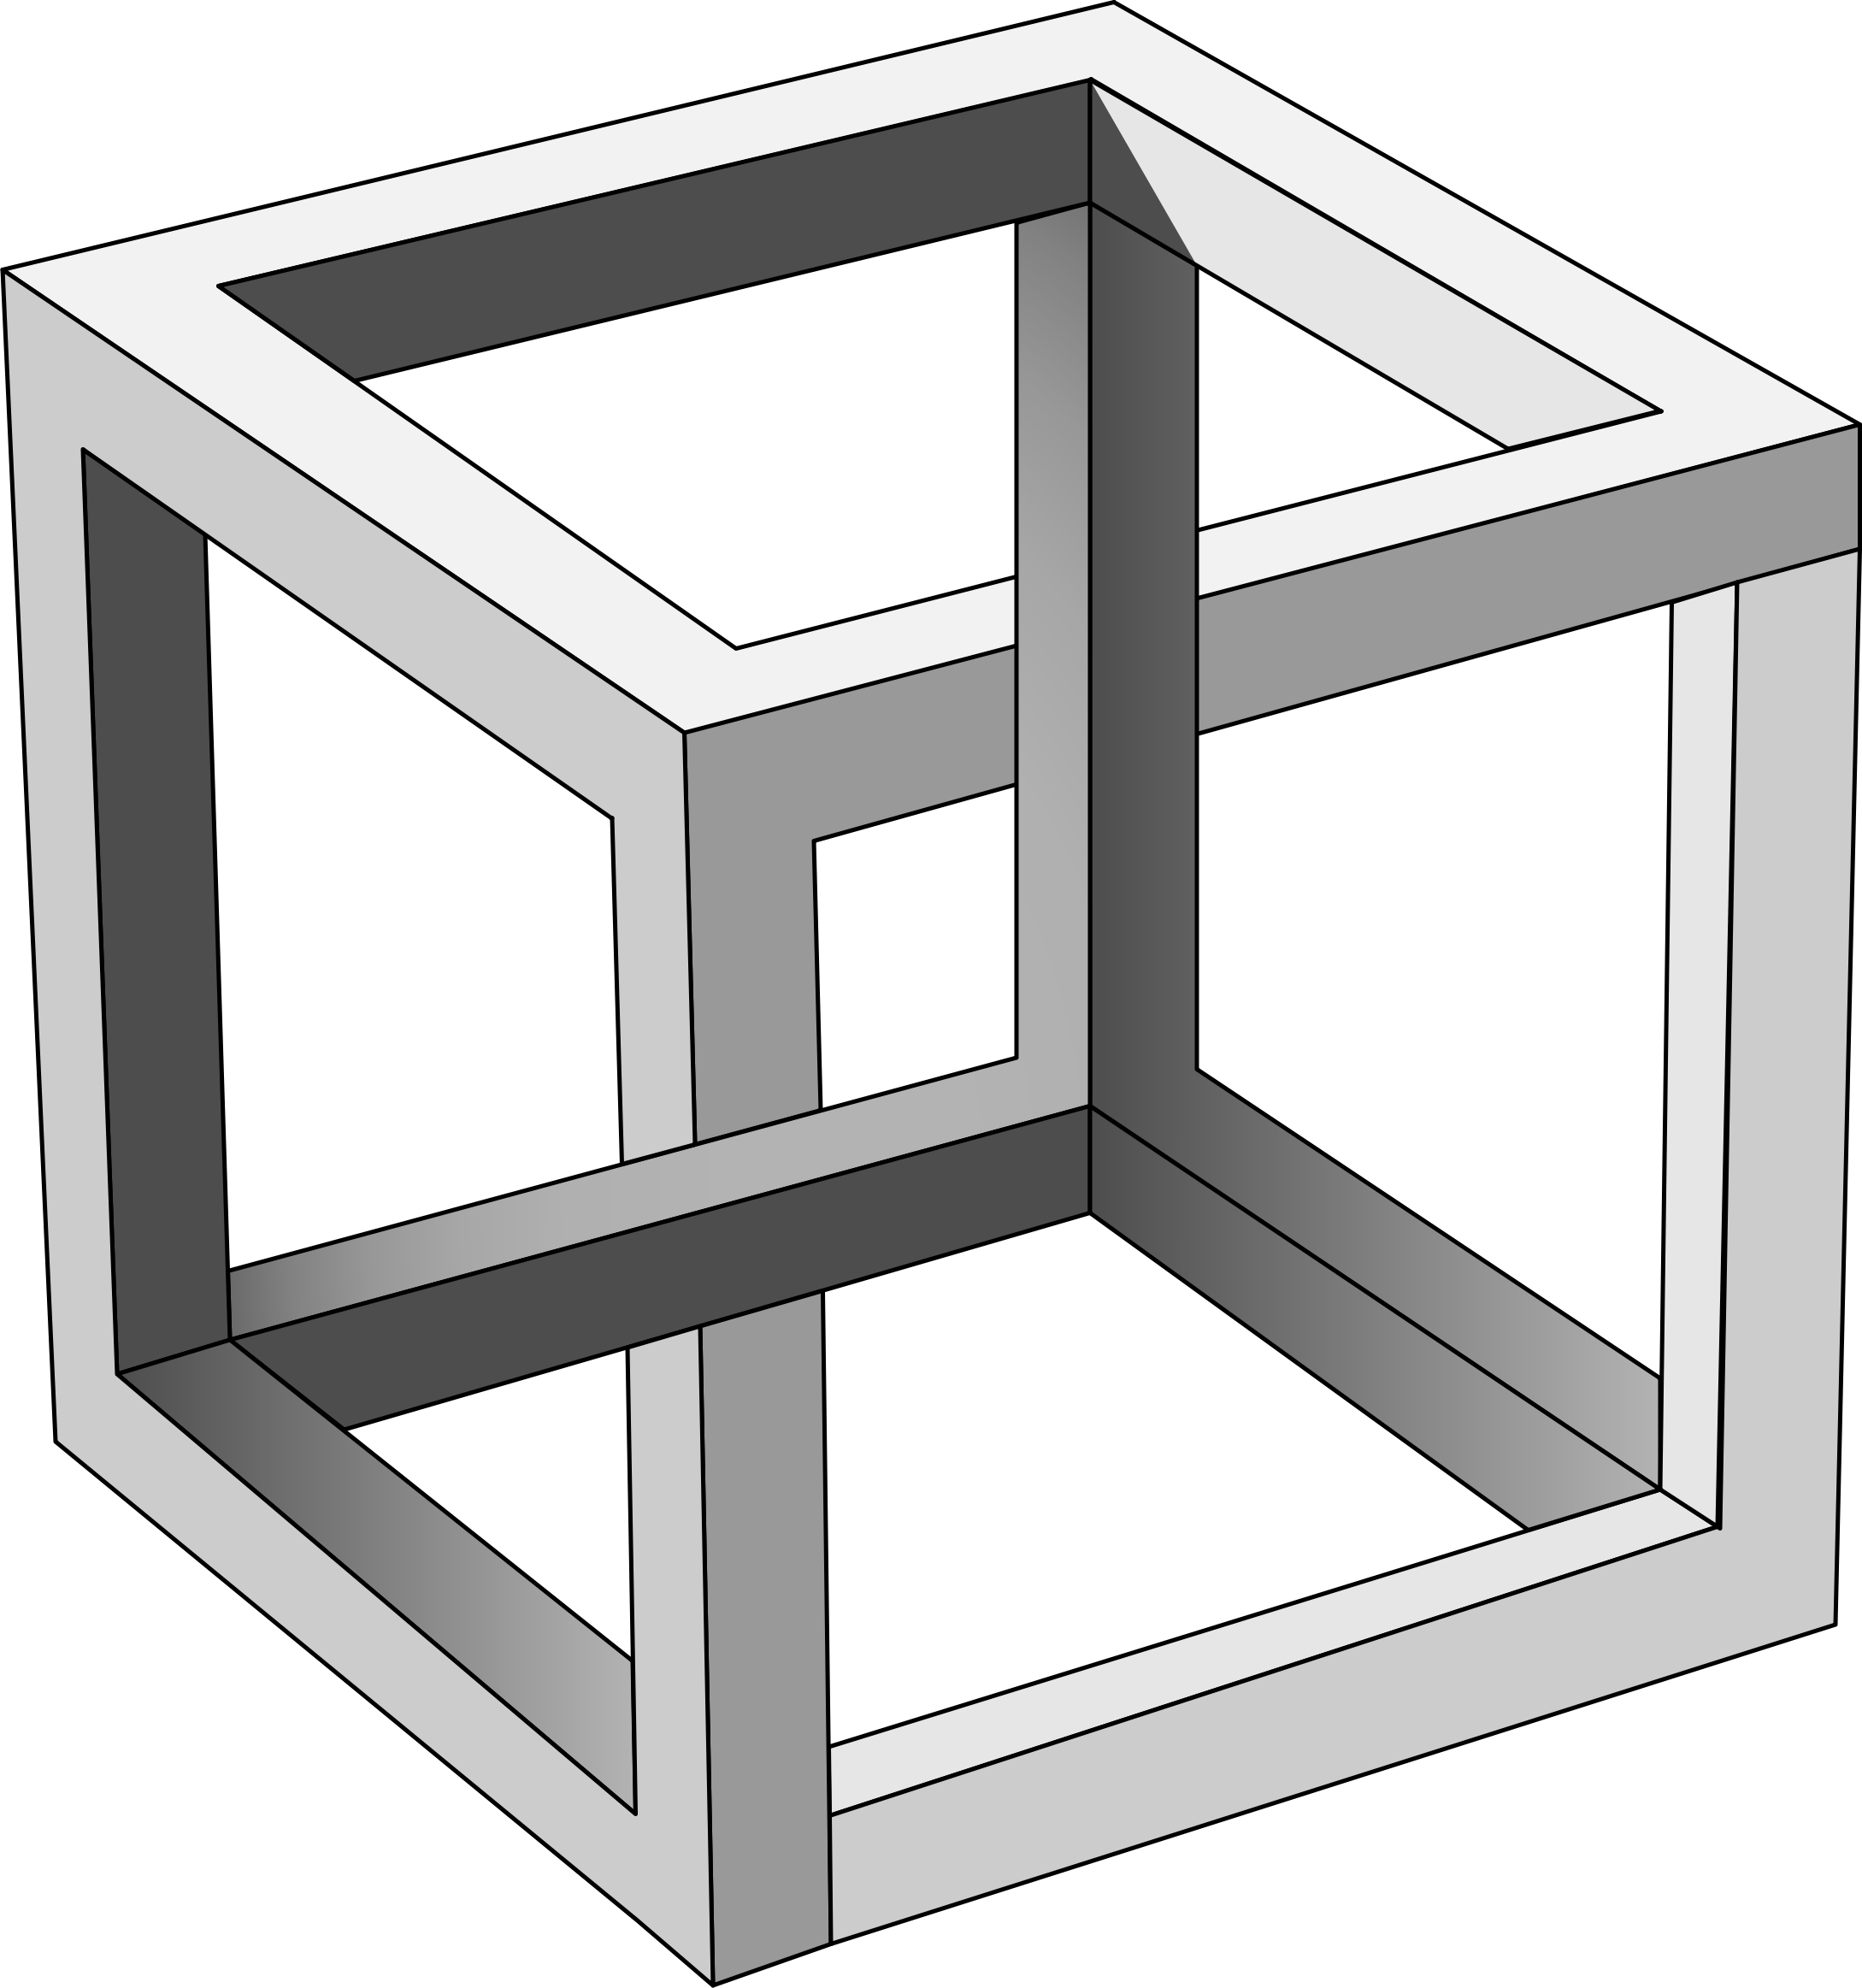 M.c.escher clipart pet Impossible Cube Cube MC Impossible